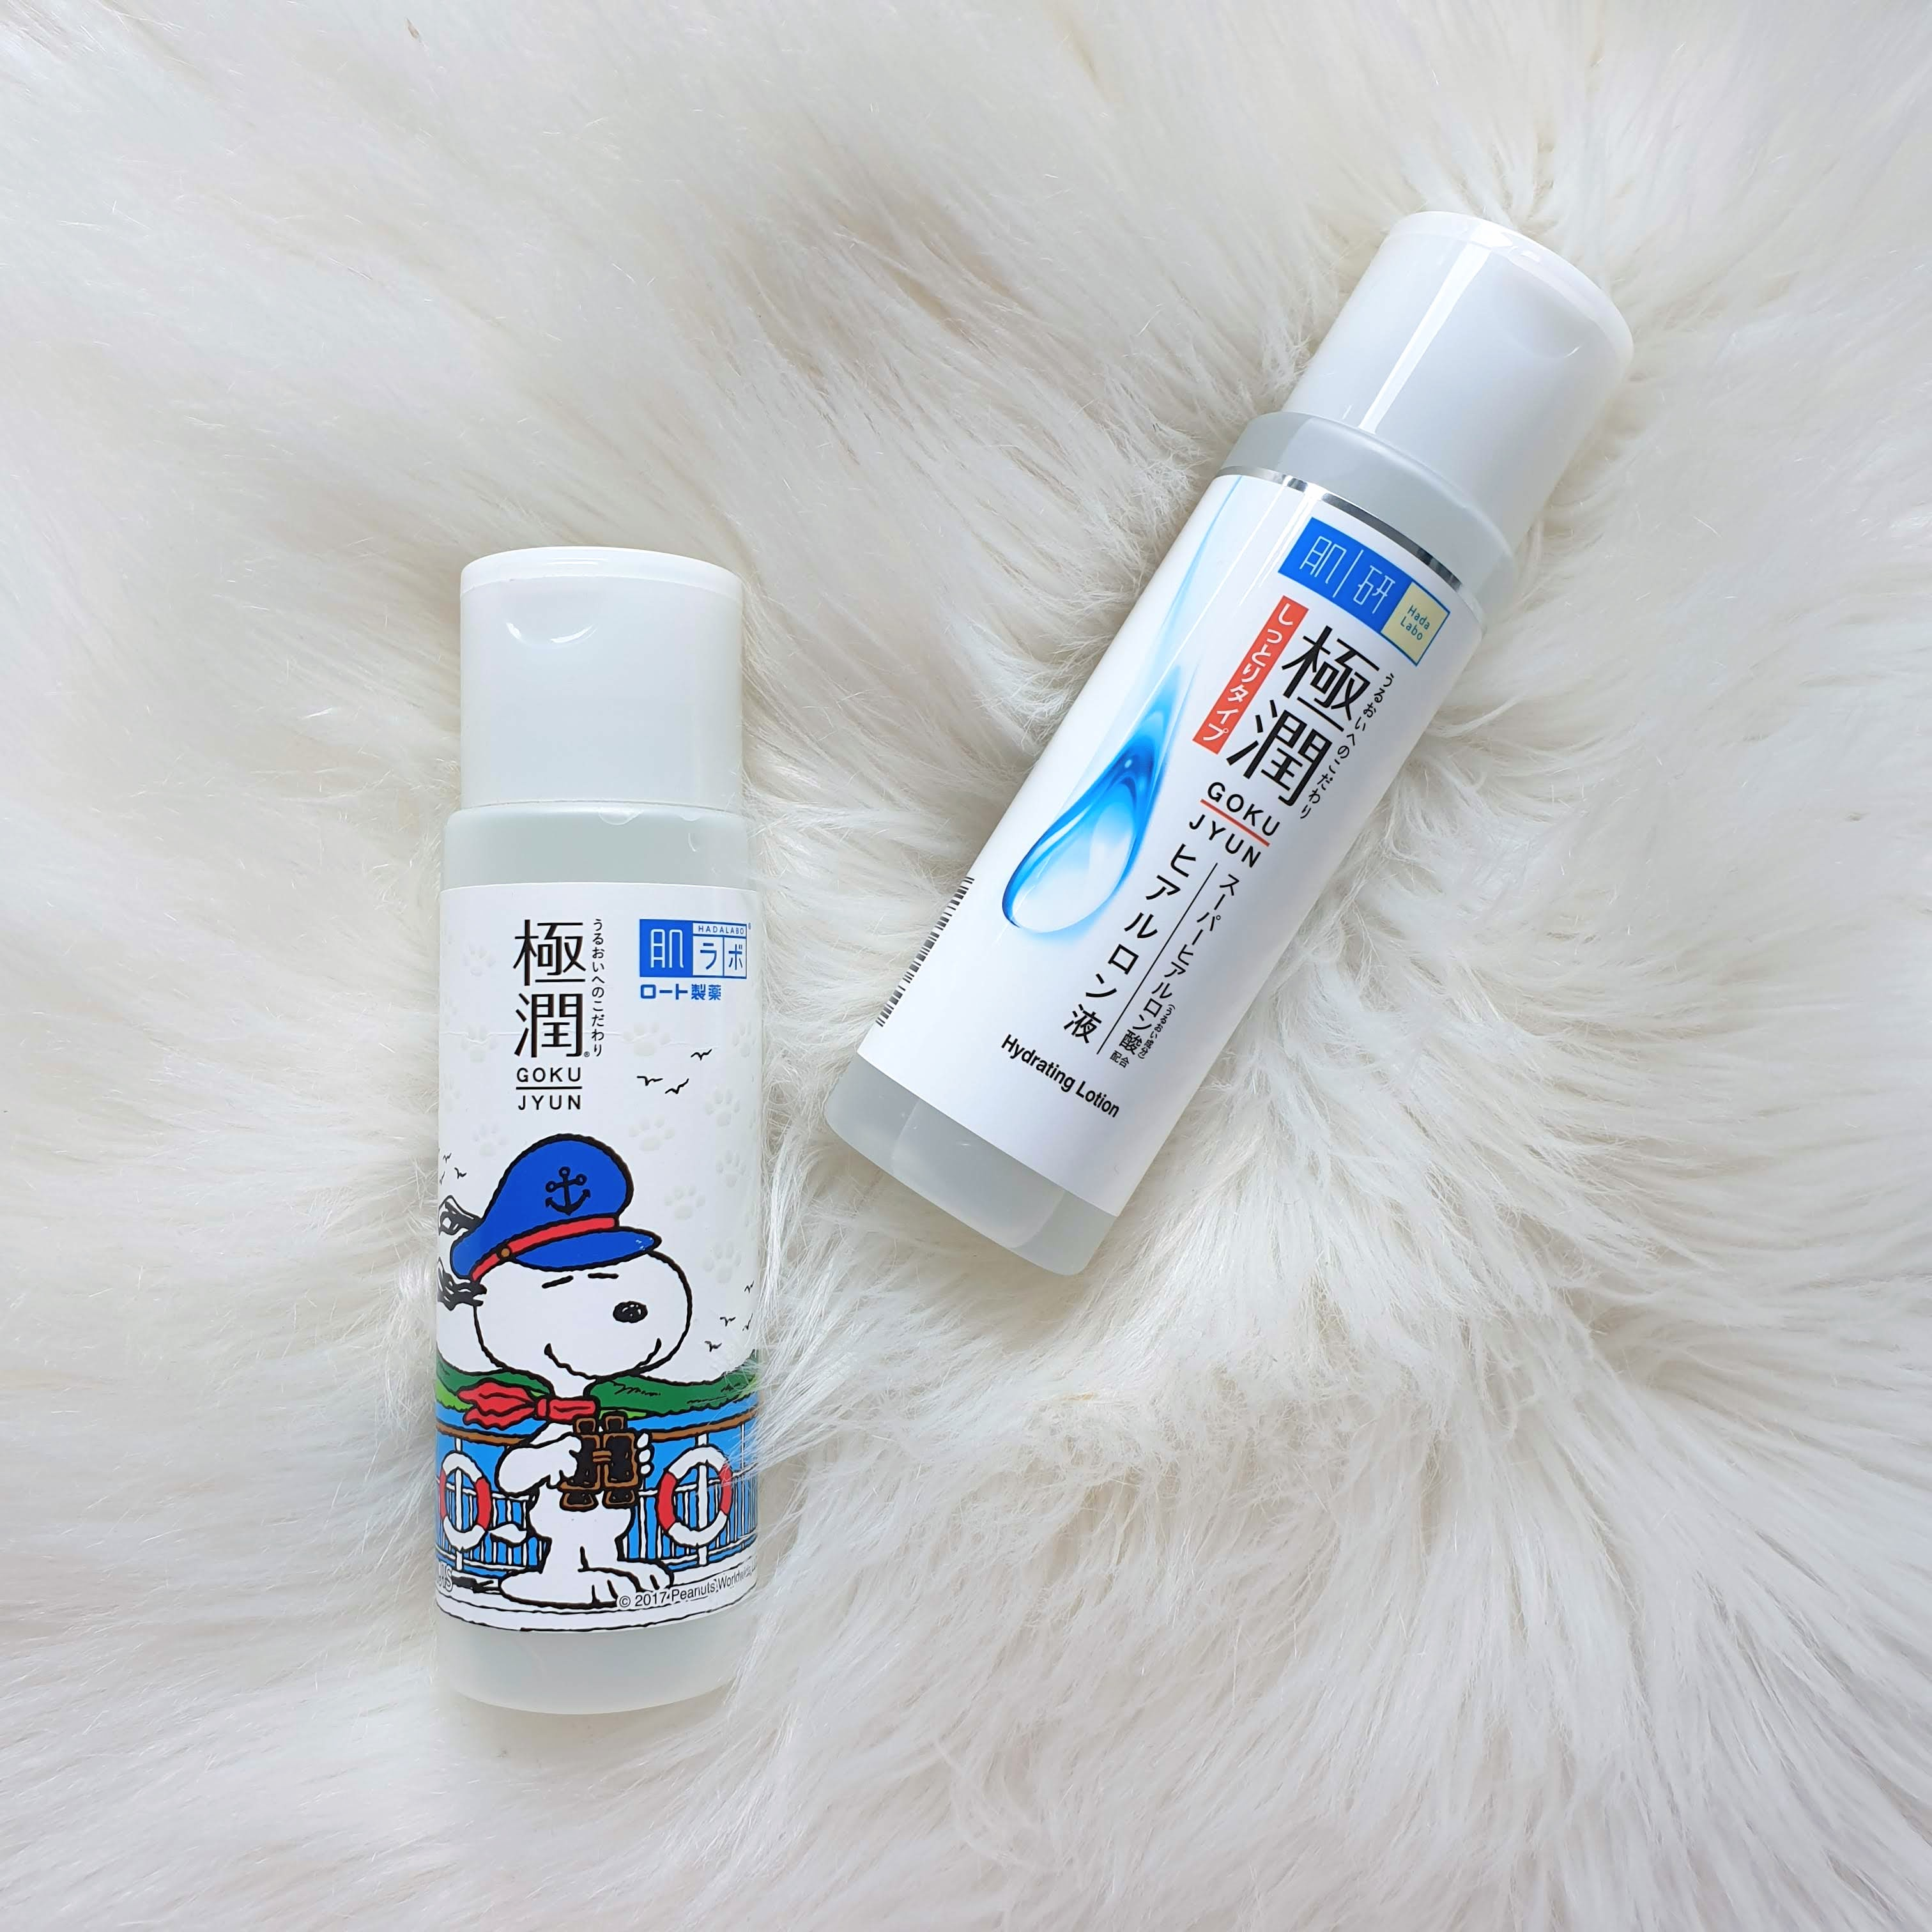 Hada Labo Super Hyaluronic Acid Hydrating Lotion Rich